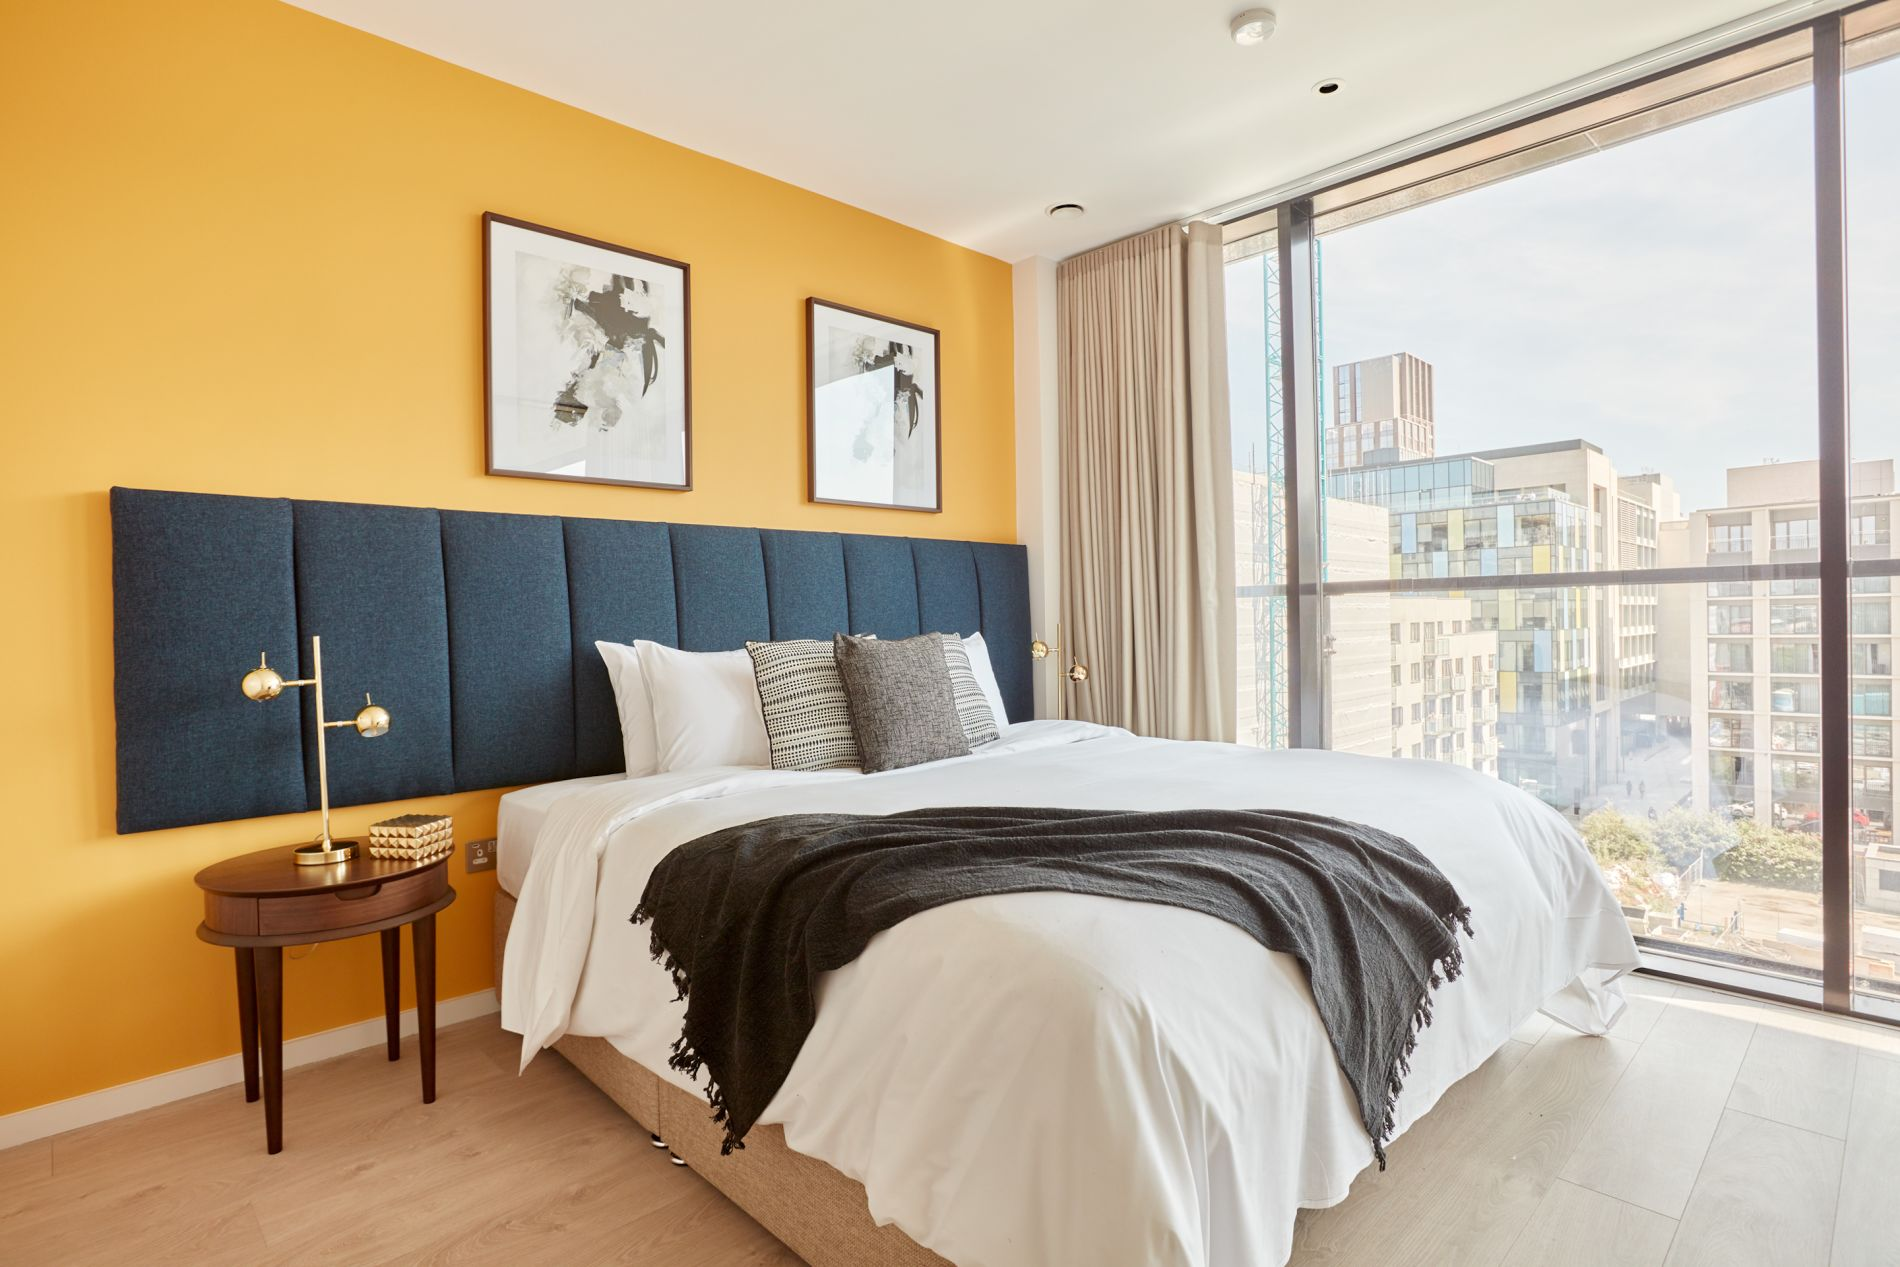 2 bedroom serviced apartment in Dublin with instant booking option